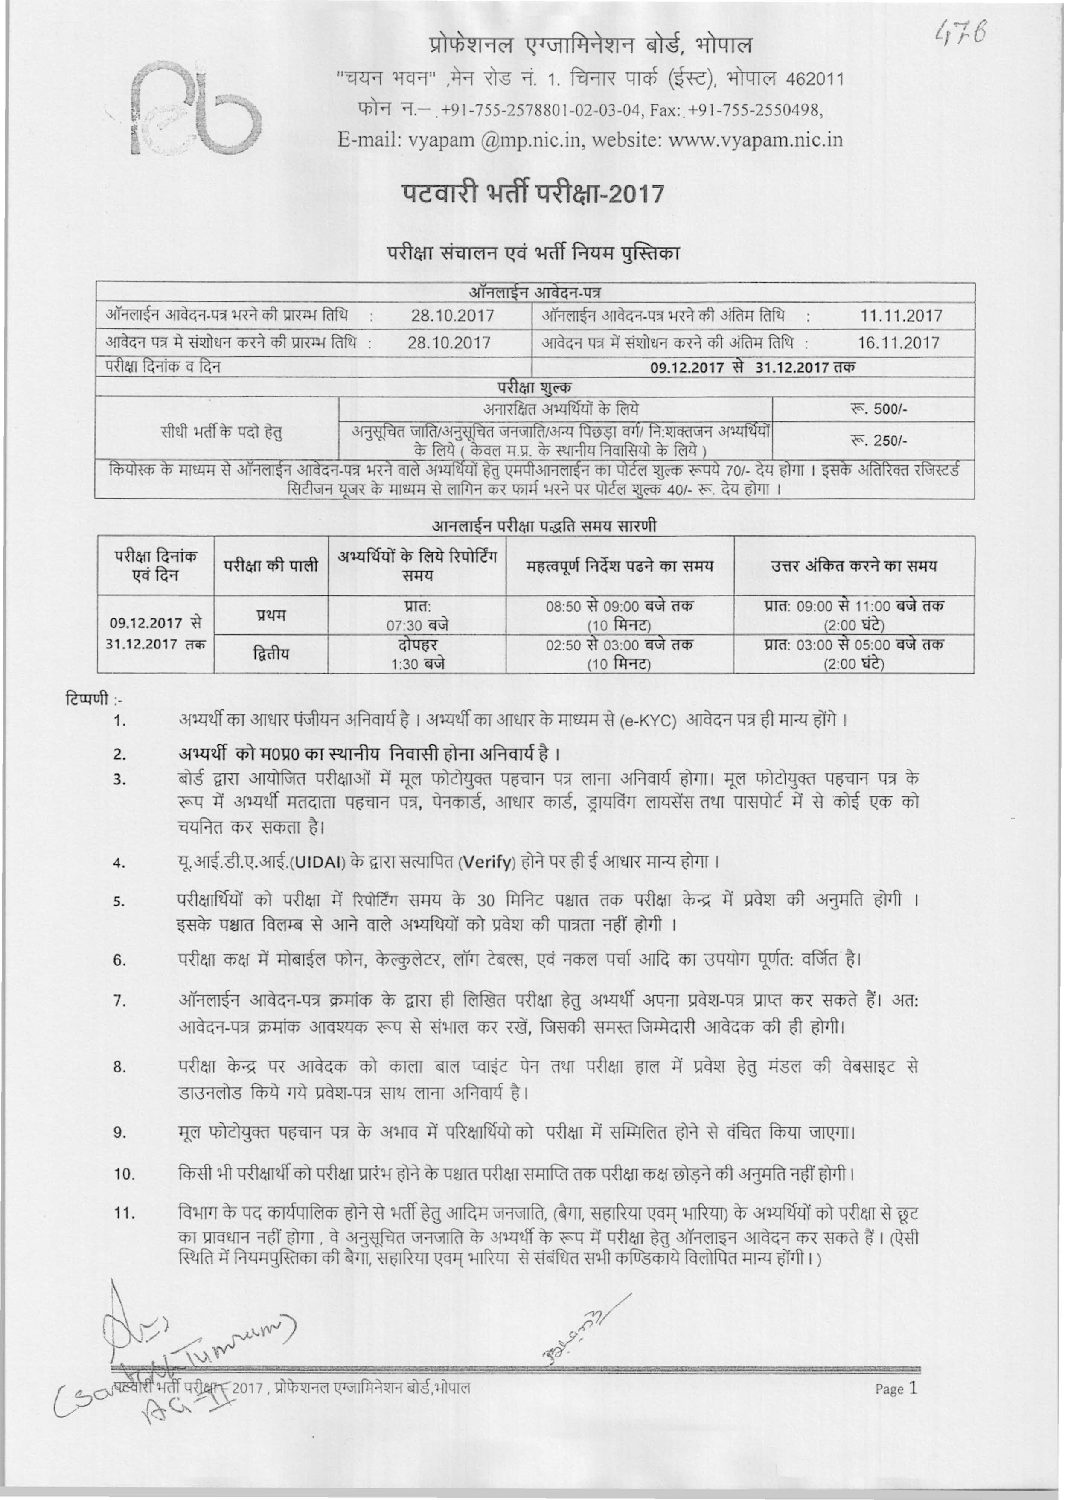 MP Patwari Recruitment Notification 2017 pdf Download